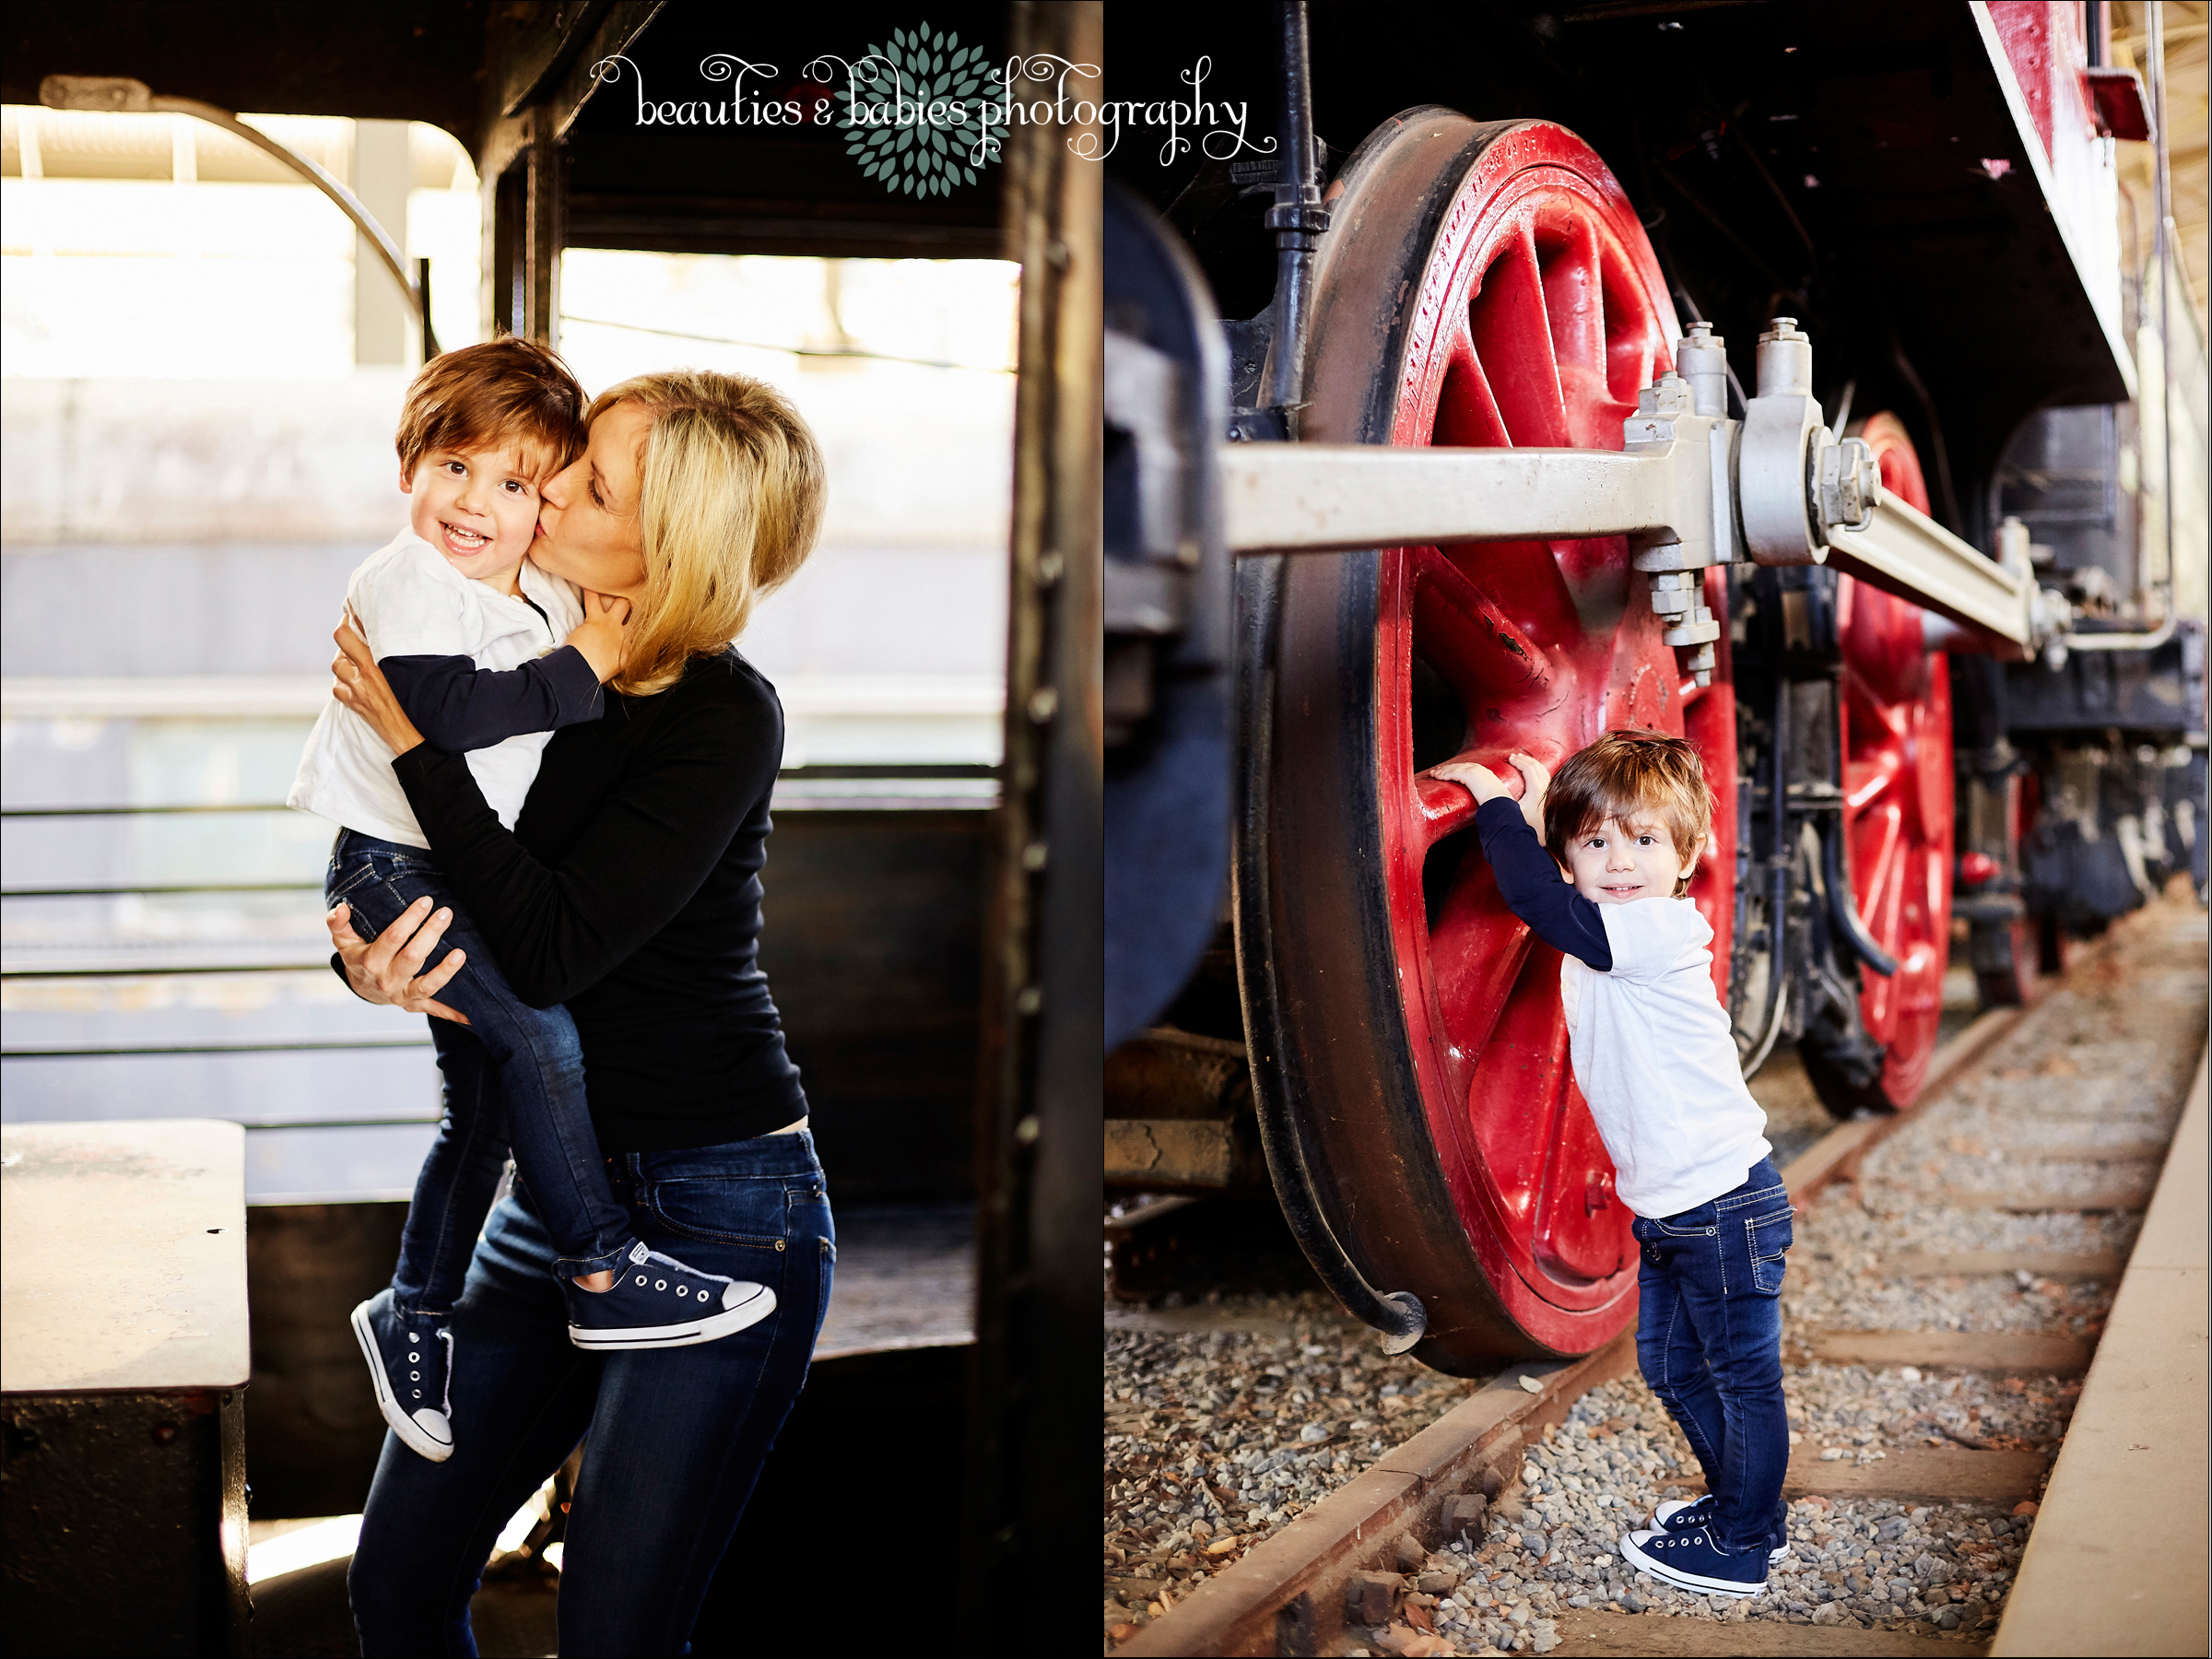 Travel Town kids photography Los Angeles toddler photographer, child lifestyle photography Los Angeles